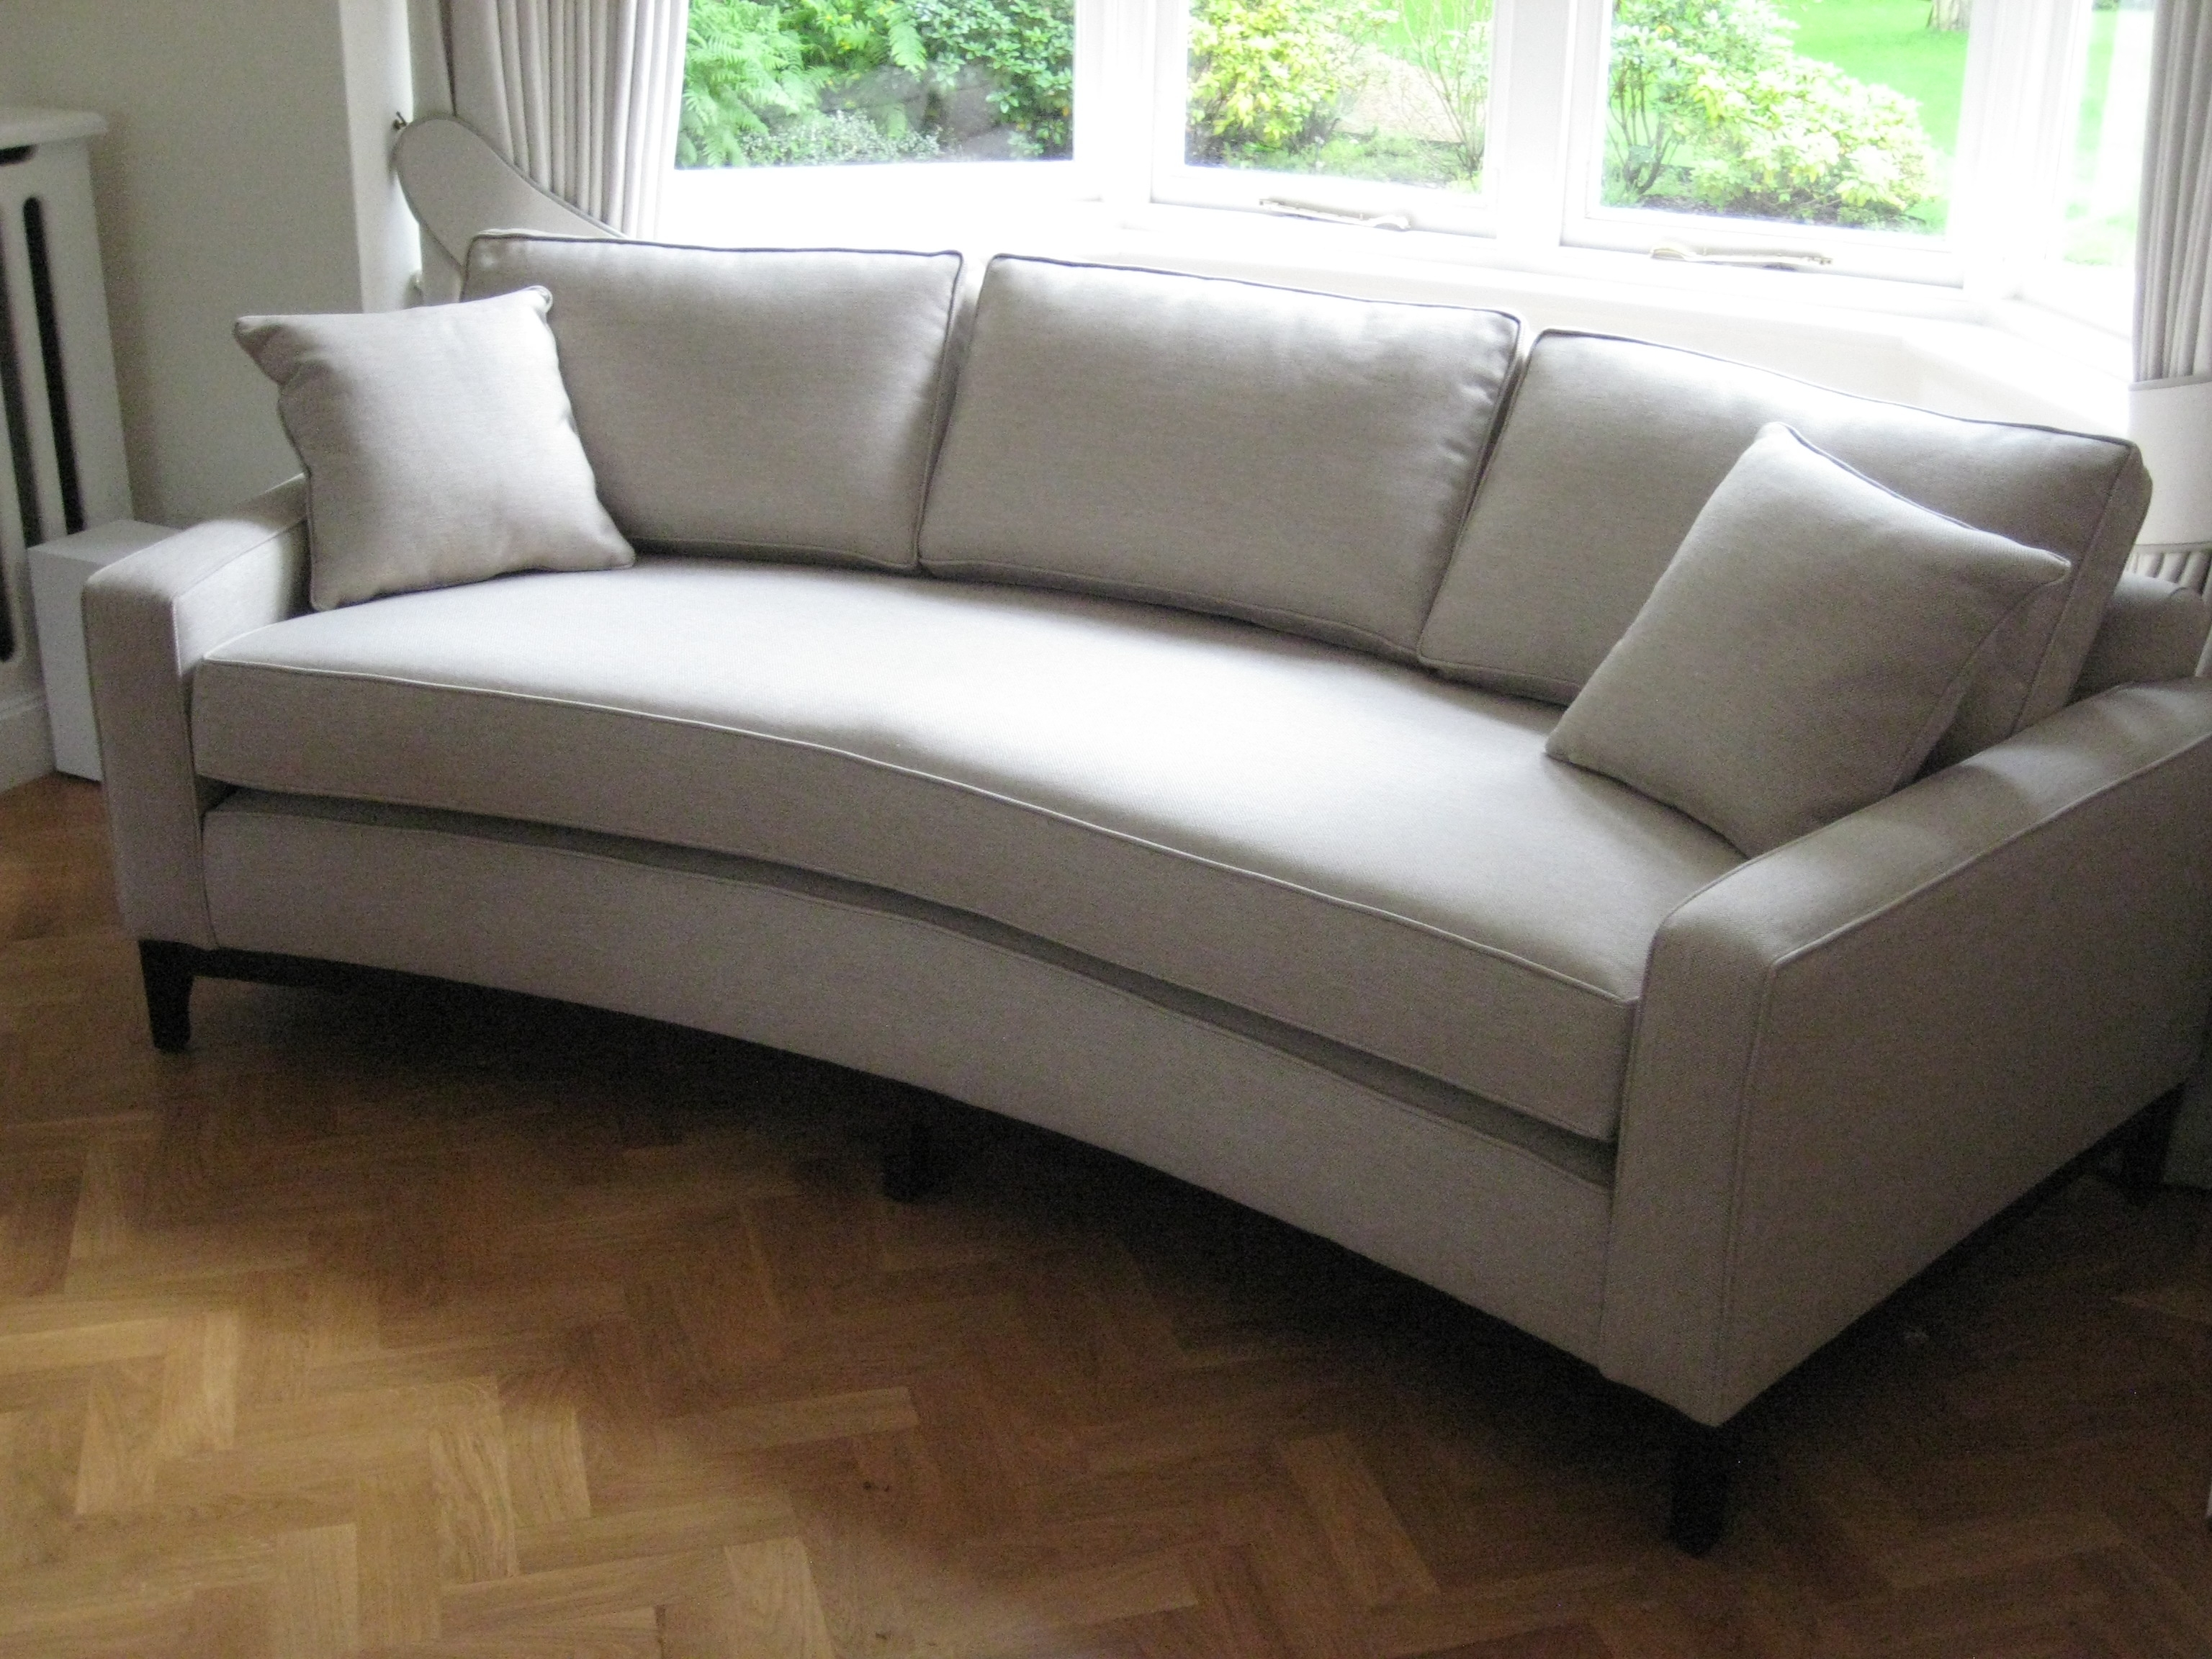 18 Best Curved Sofas British Bespoke Images On Pinterest Throughout Bespoke Corner Sofa Beds (Image 1 of 15)